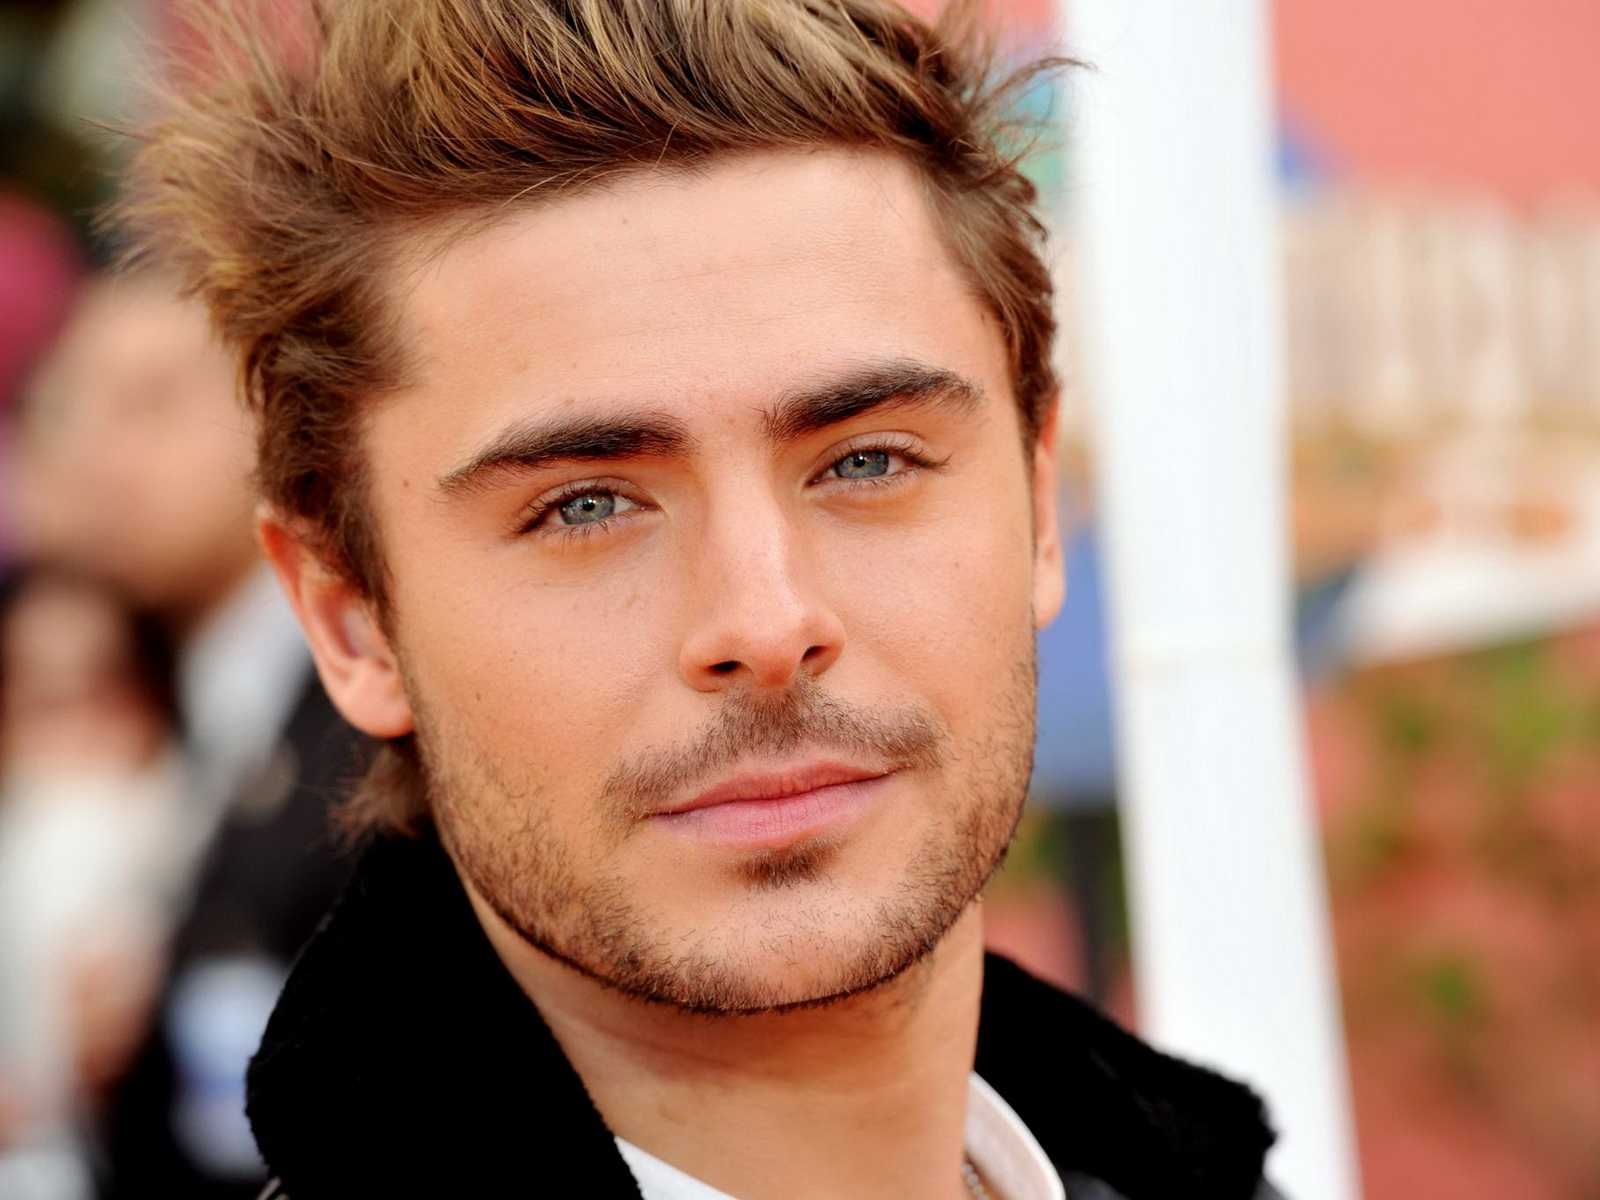 Zac Efron Talks The Awkward Moment And Life After Rehab On That Today Show